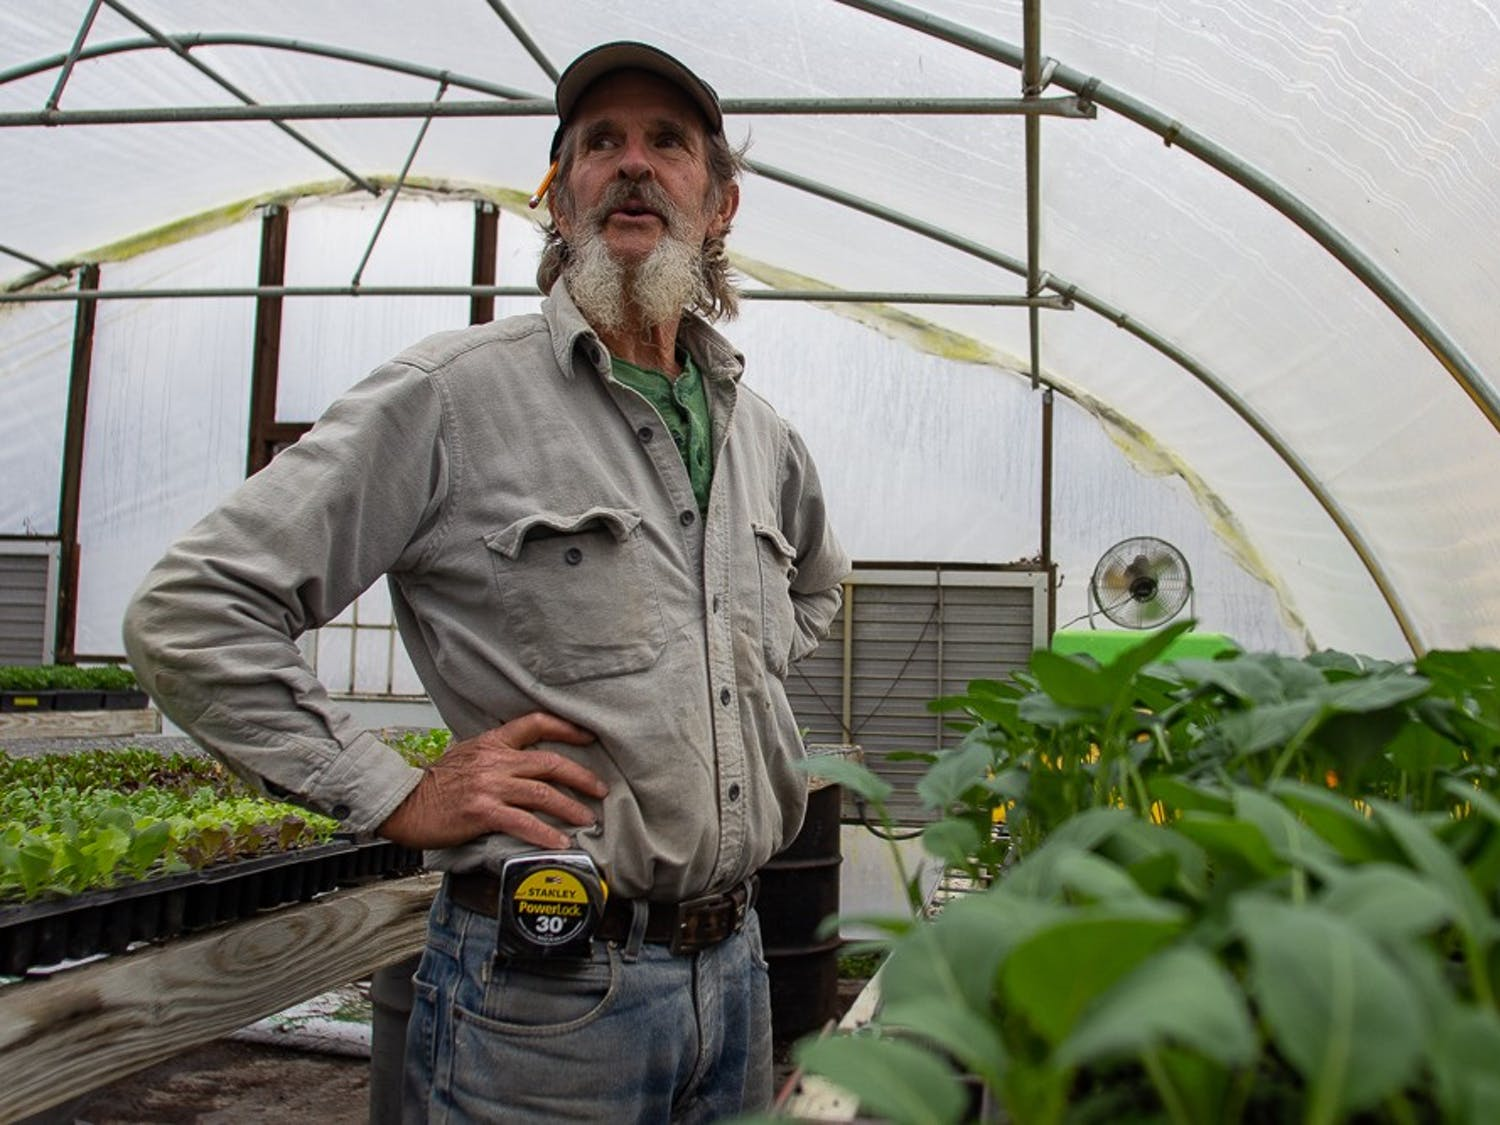 Orange County resident Ken Dawson, 69, stands in one of his greenhouses on Wednesday, Feb. 12, 2020. Dawson has been living in the Cedar Grove community since 1972 and has been on the board of both the Carrboro and Durham farmers markets.